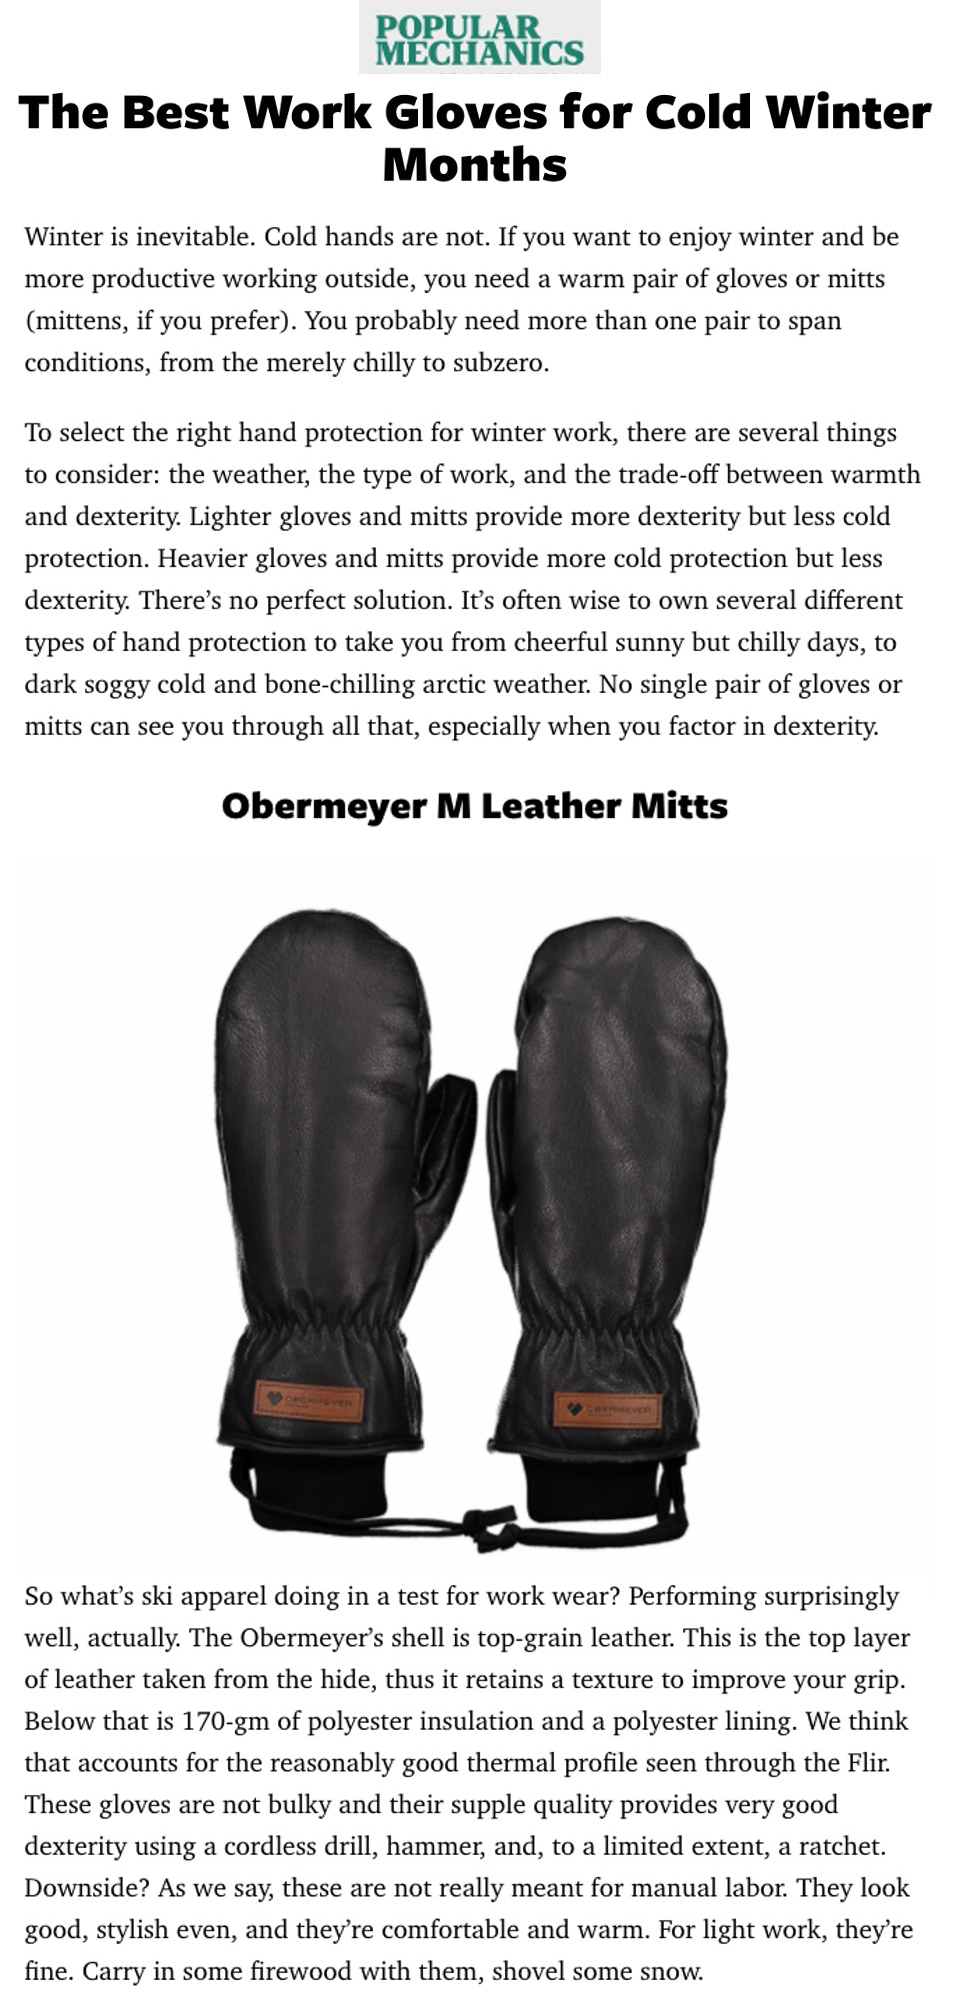 obermeyer leather mitten